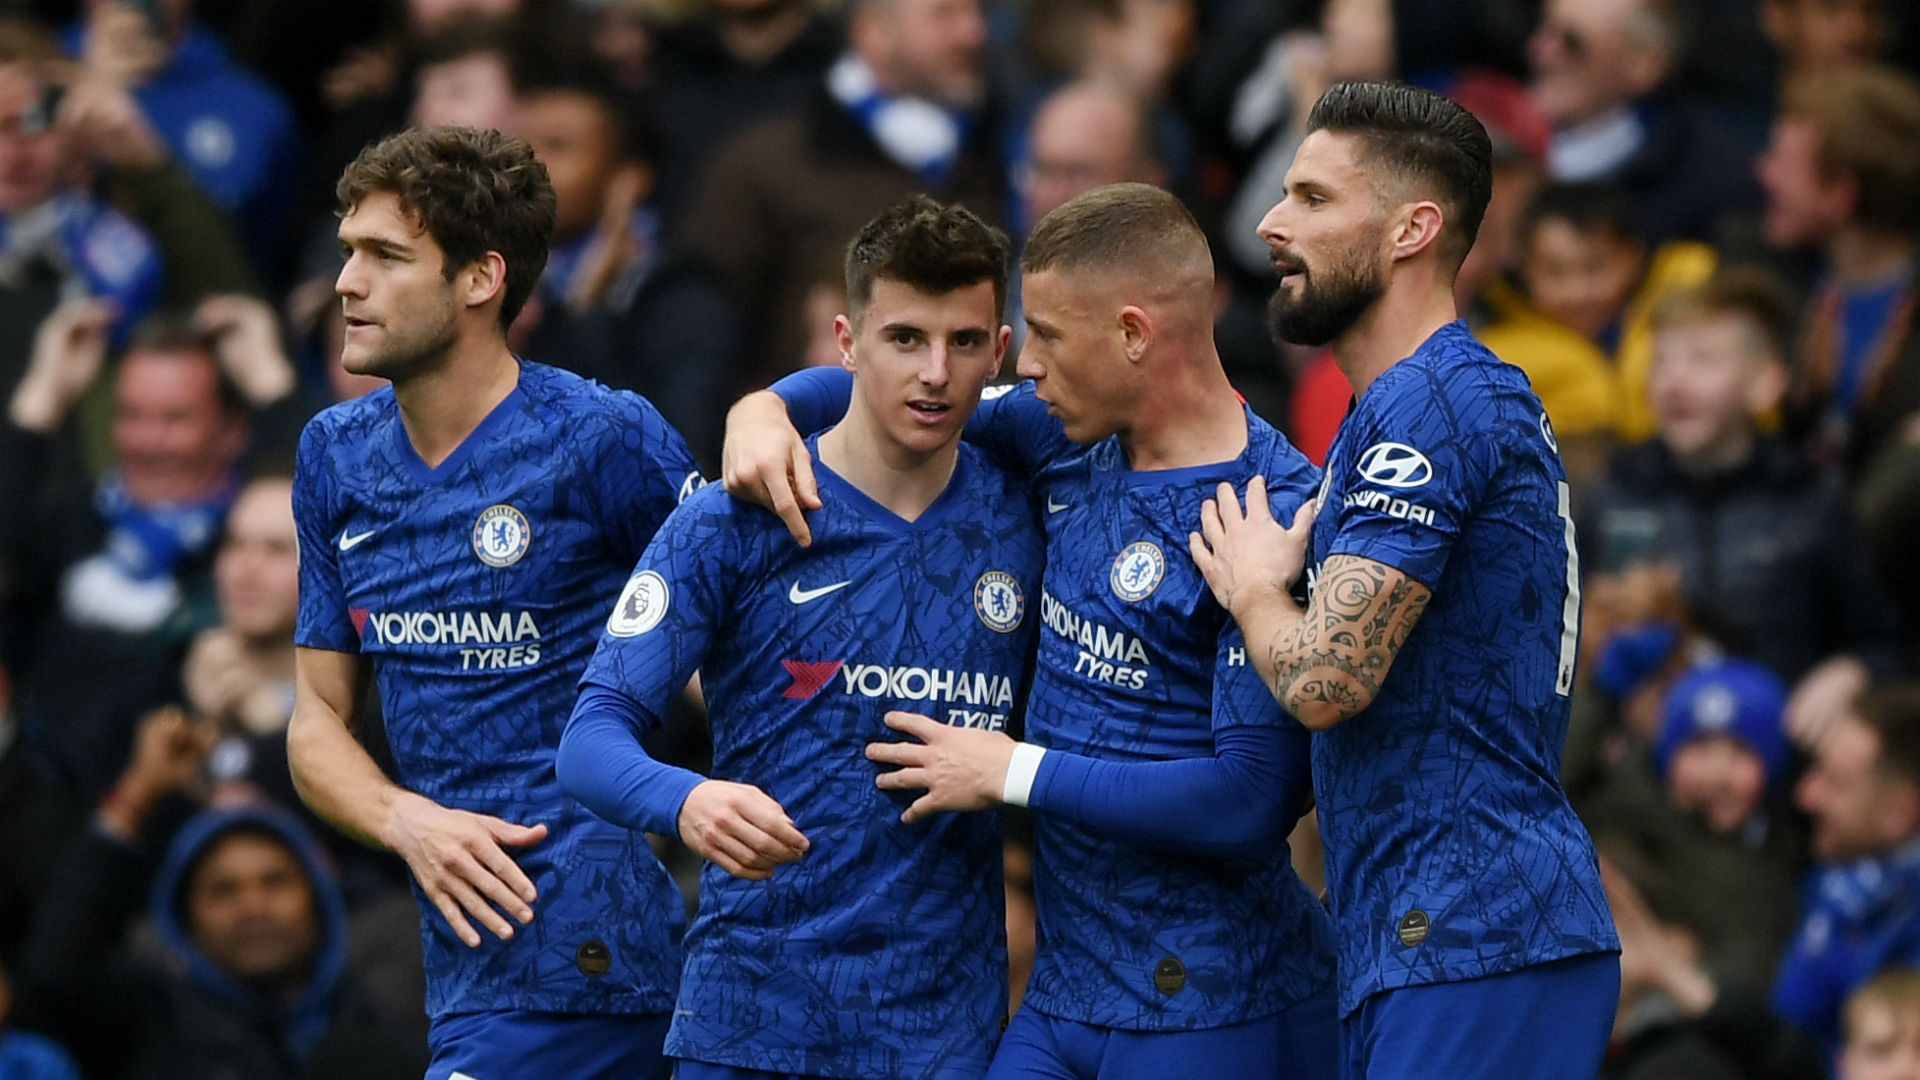 Lampard: Chelsea haven't found second wind yet